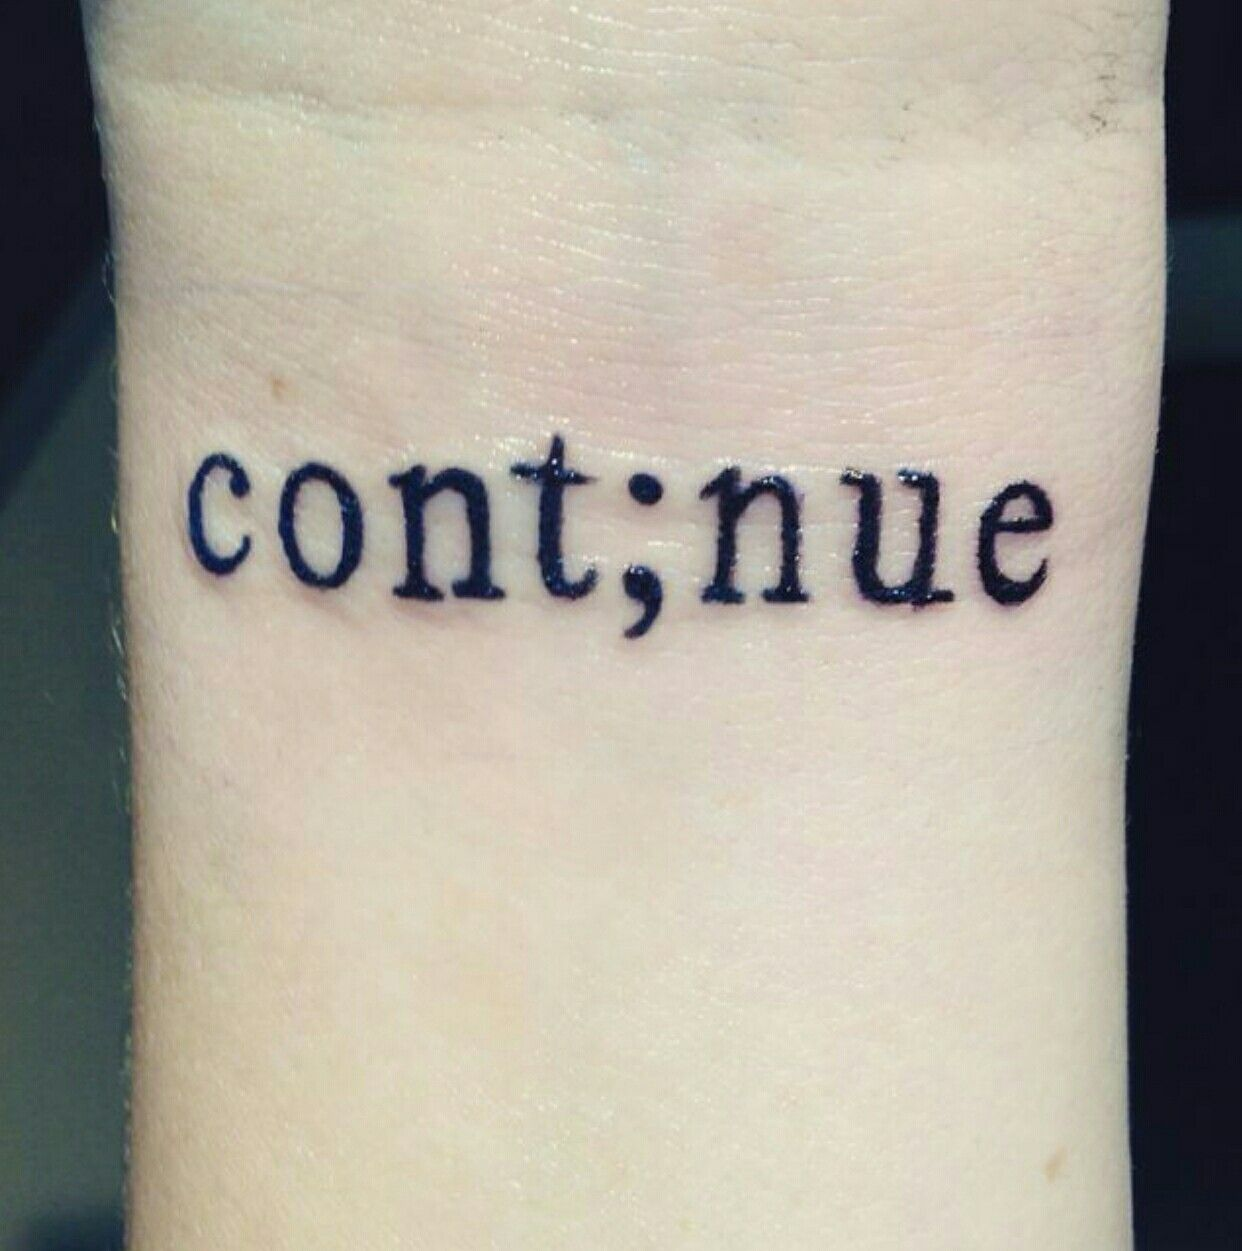 Semicolon Tattoo Recovery How Depression Led To: Continue Tattoo...semicolon; My Story Isn't Over Yet